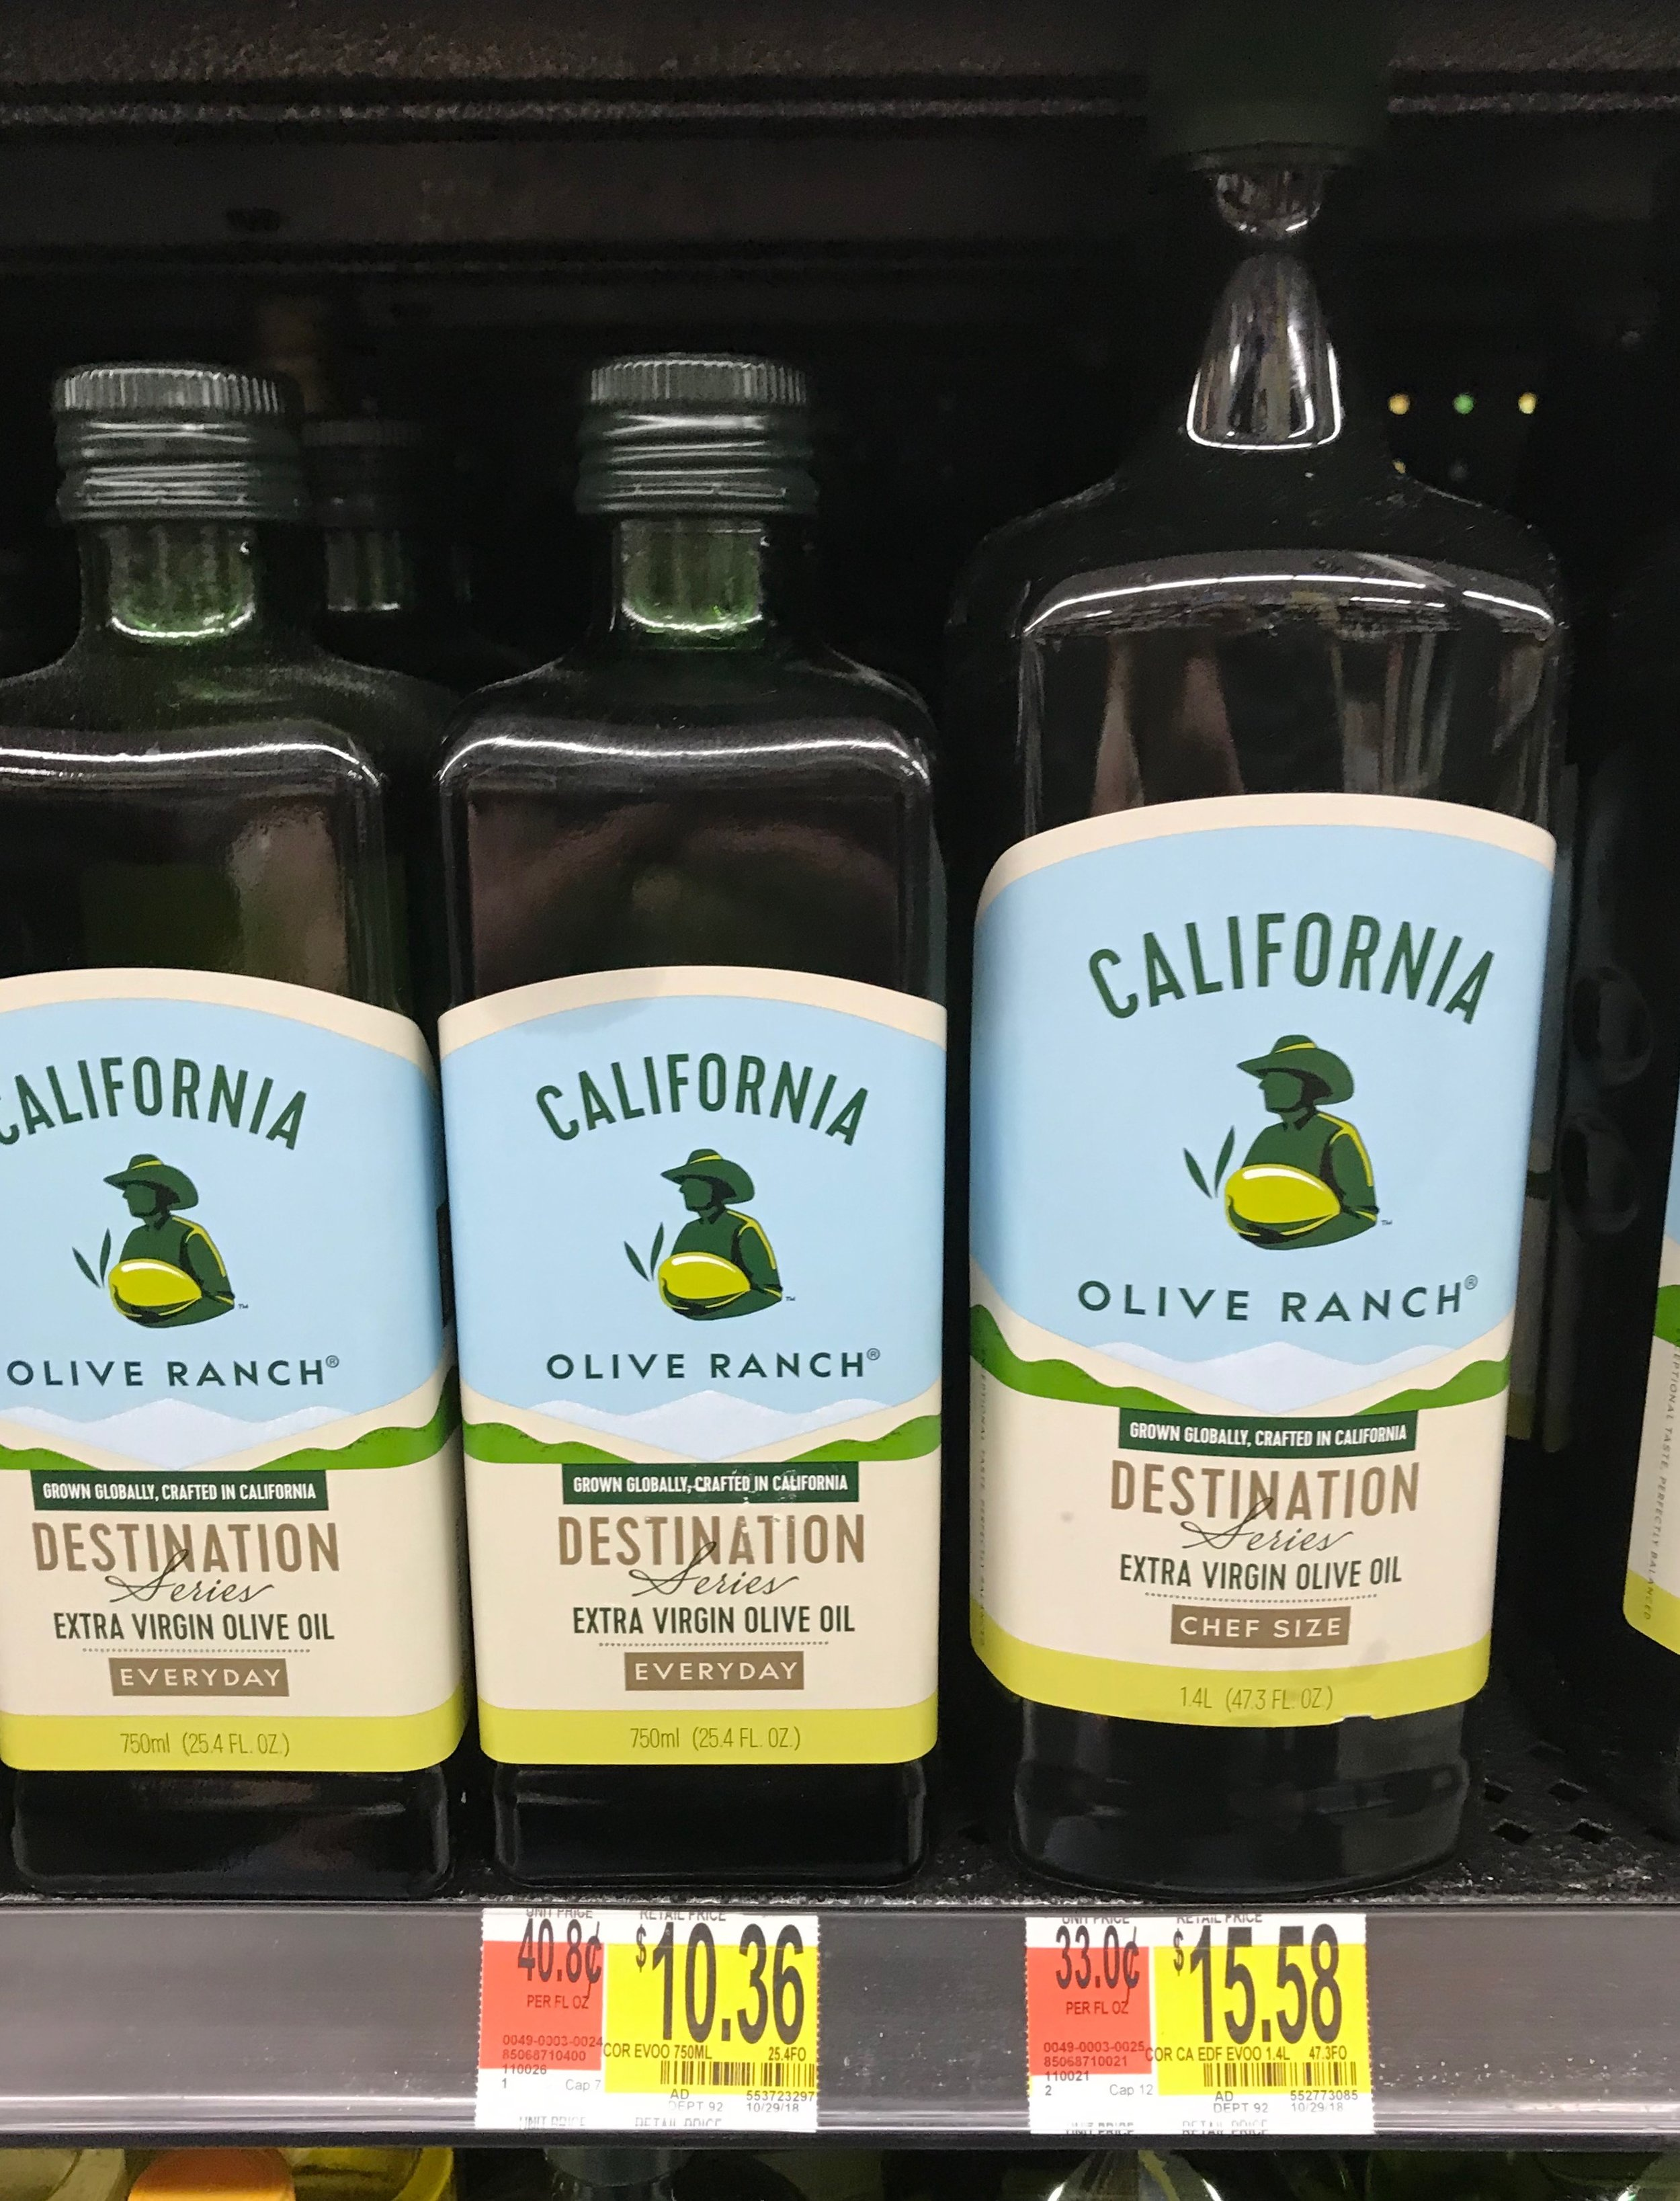 California Olive Oil: you get 30.4 MORE ounces for $2.41 LESS that the price on Amazon!!